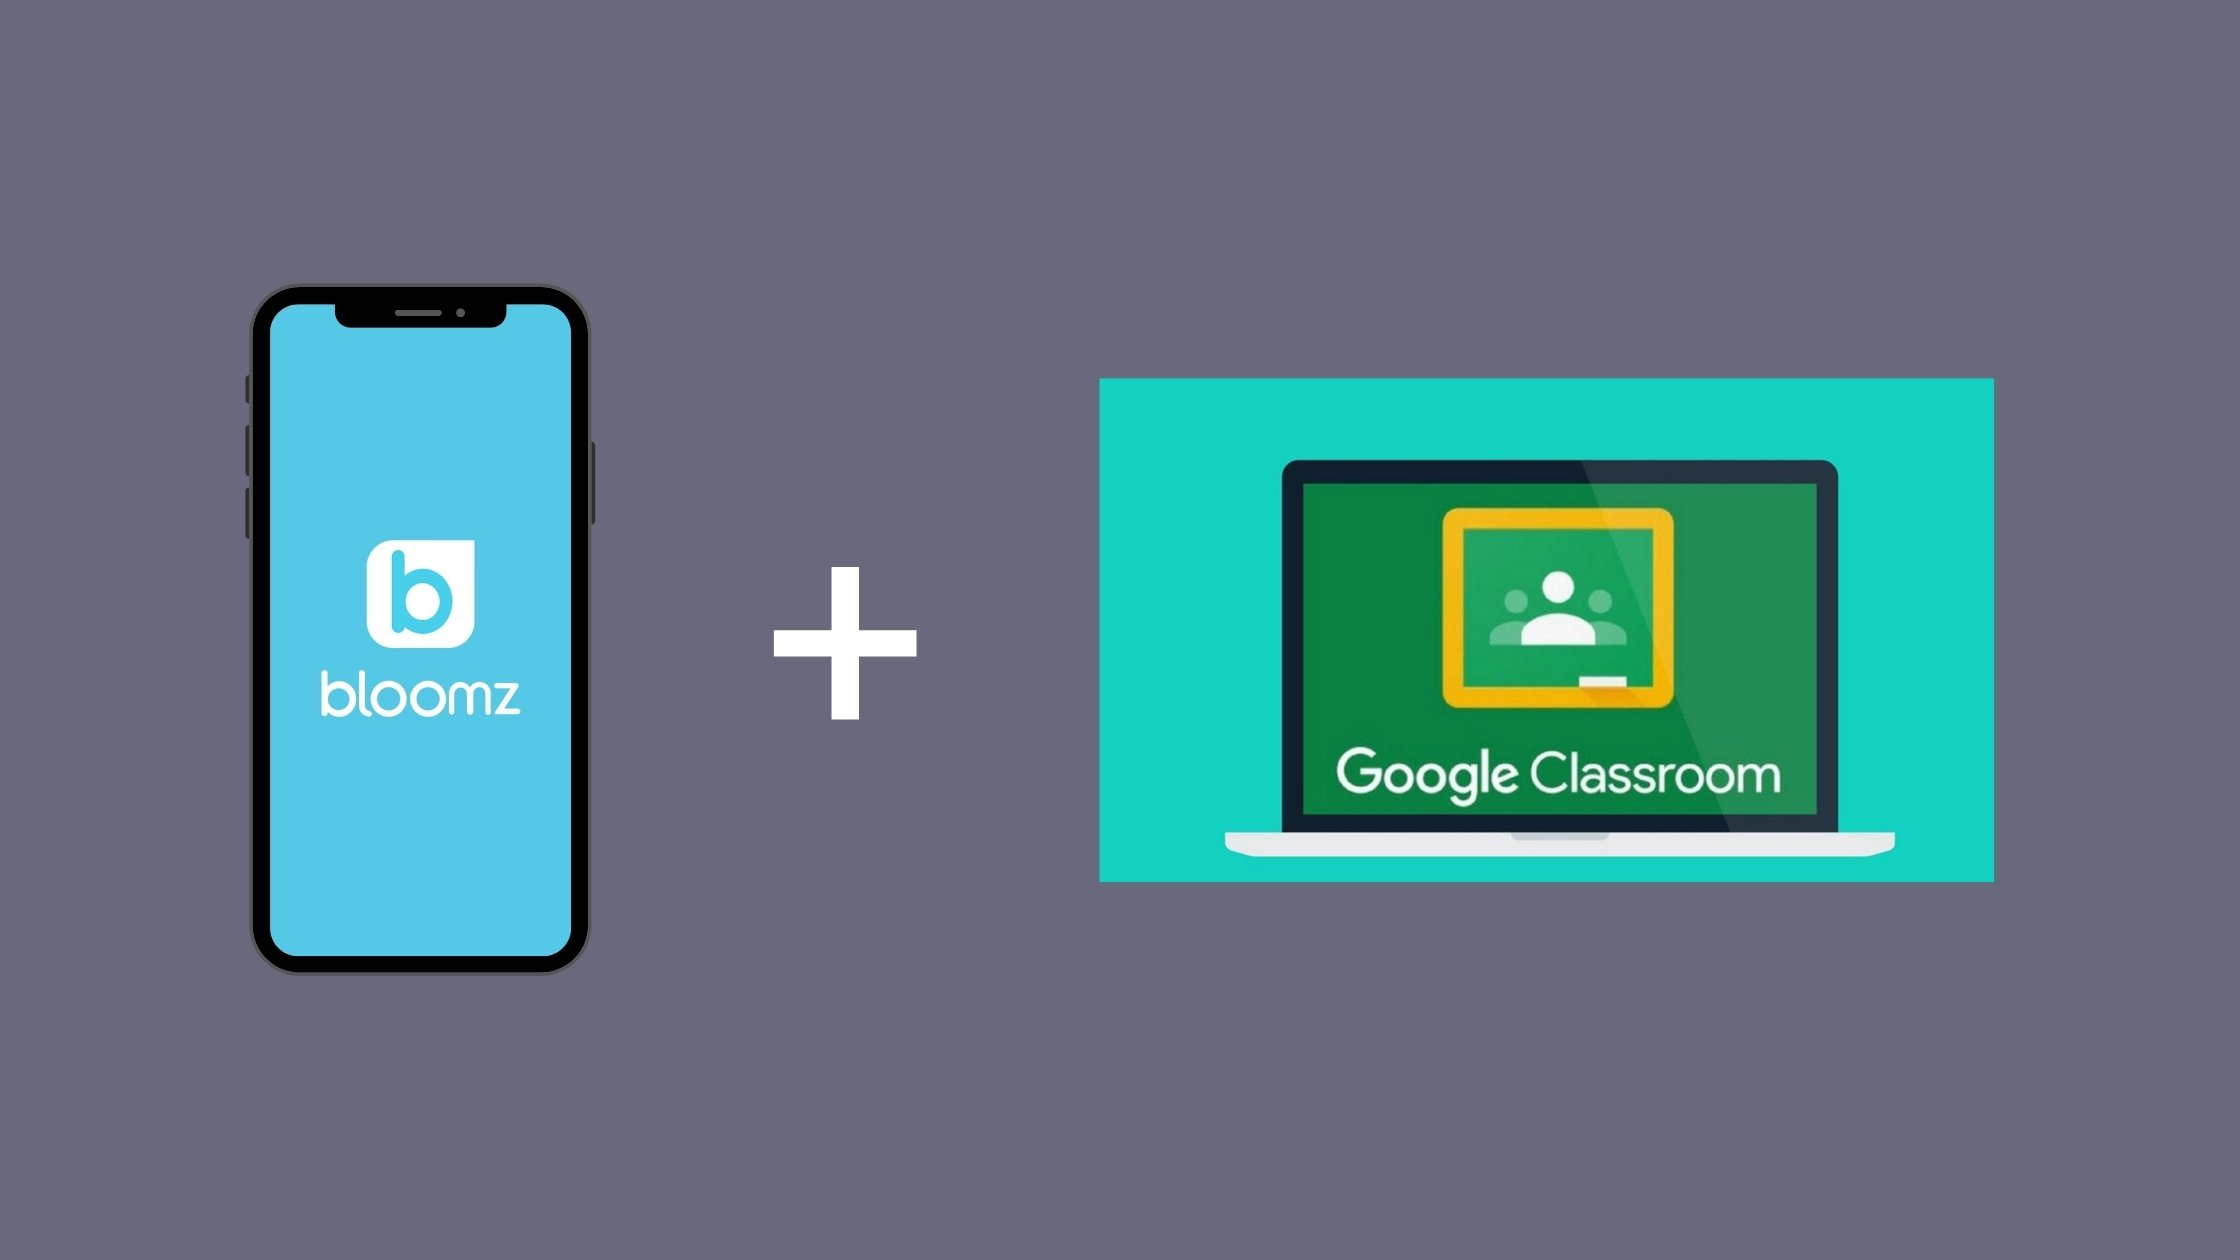 Connect Bloomz with Google Classroom